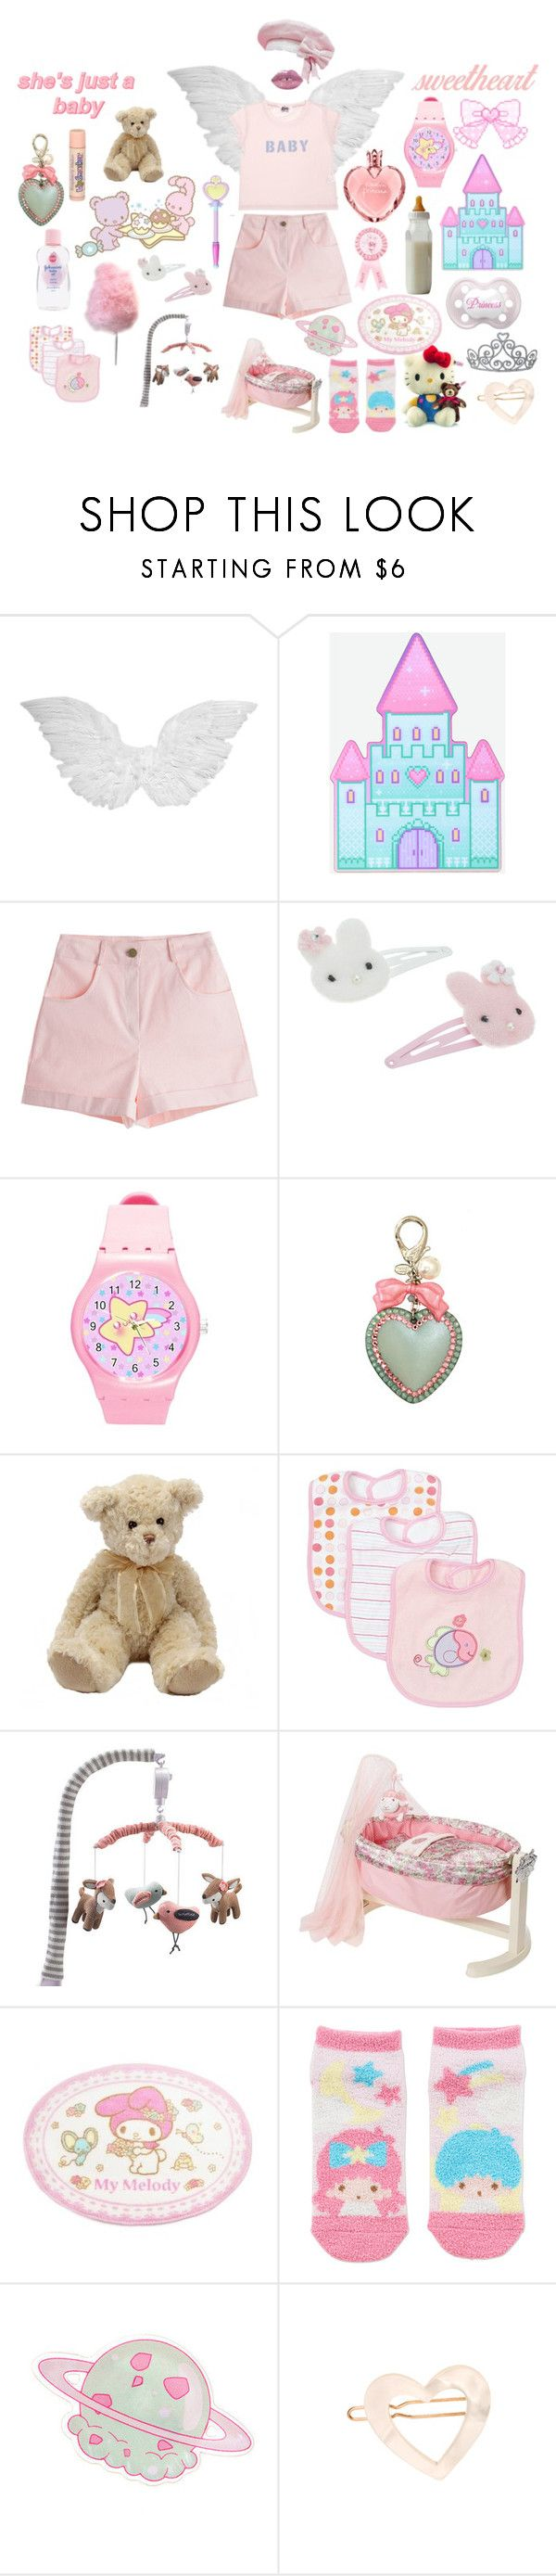 """""""i'm 2 yrs old*"""" by iojupiter ❤ liked on Polyvore featuring Cotton Candy, Monsoon, Tarina Tarantino, Lolli Living, France Luxe, pastel, ddlg, littlespace, aesthetic and cgl"""